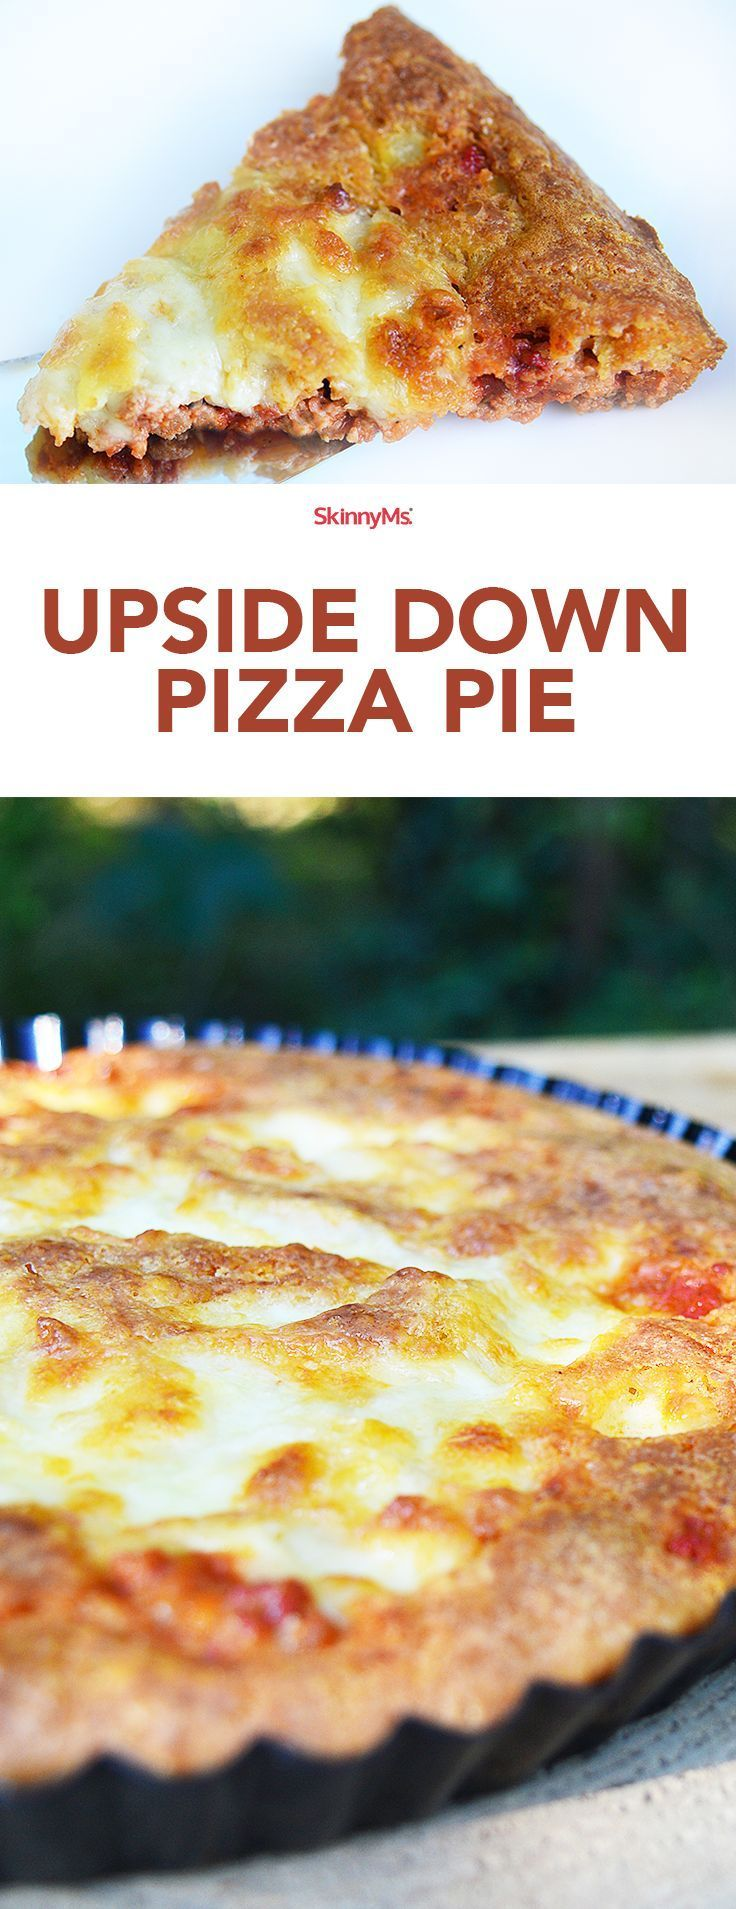 This Upside Down Pizza Pie recipe really turns things upside down! Try it for dinner tonight! #skinnyms